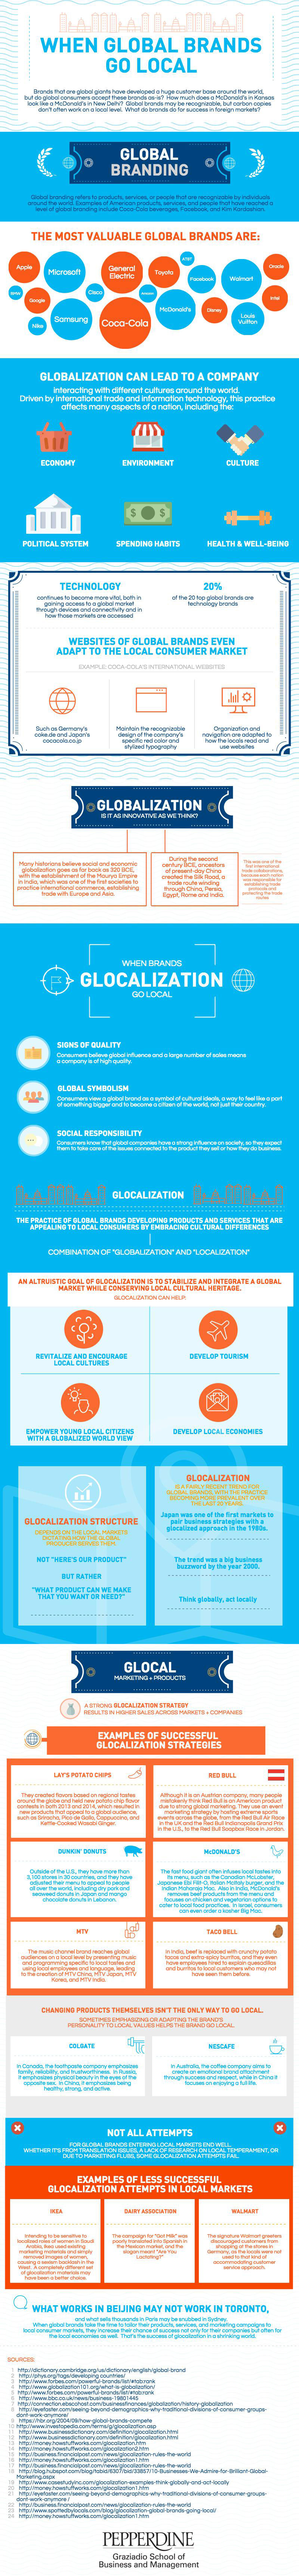 An infographic on glocalization from Pepperdine University: When Global Brands Go Local